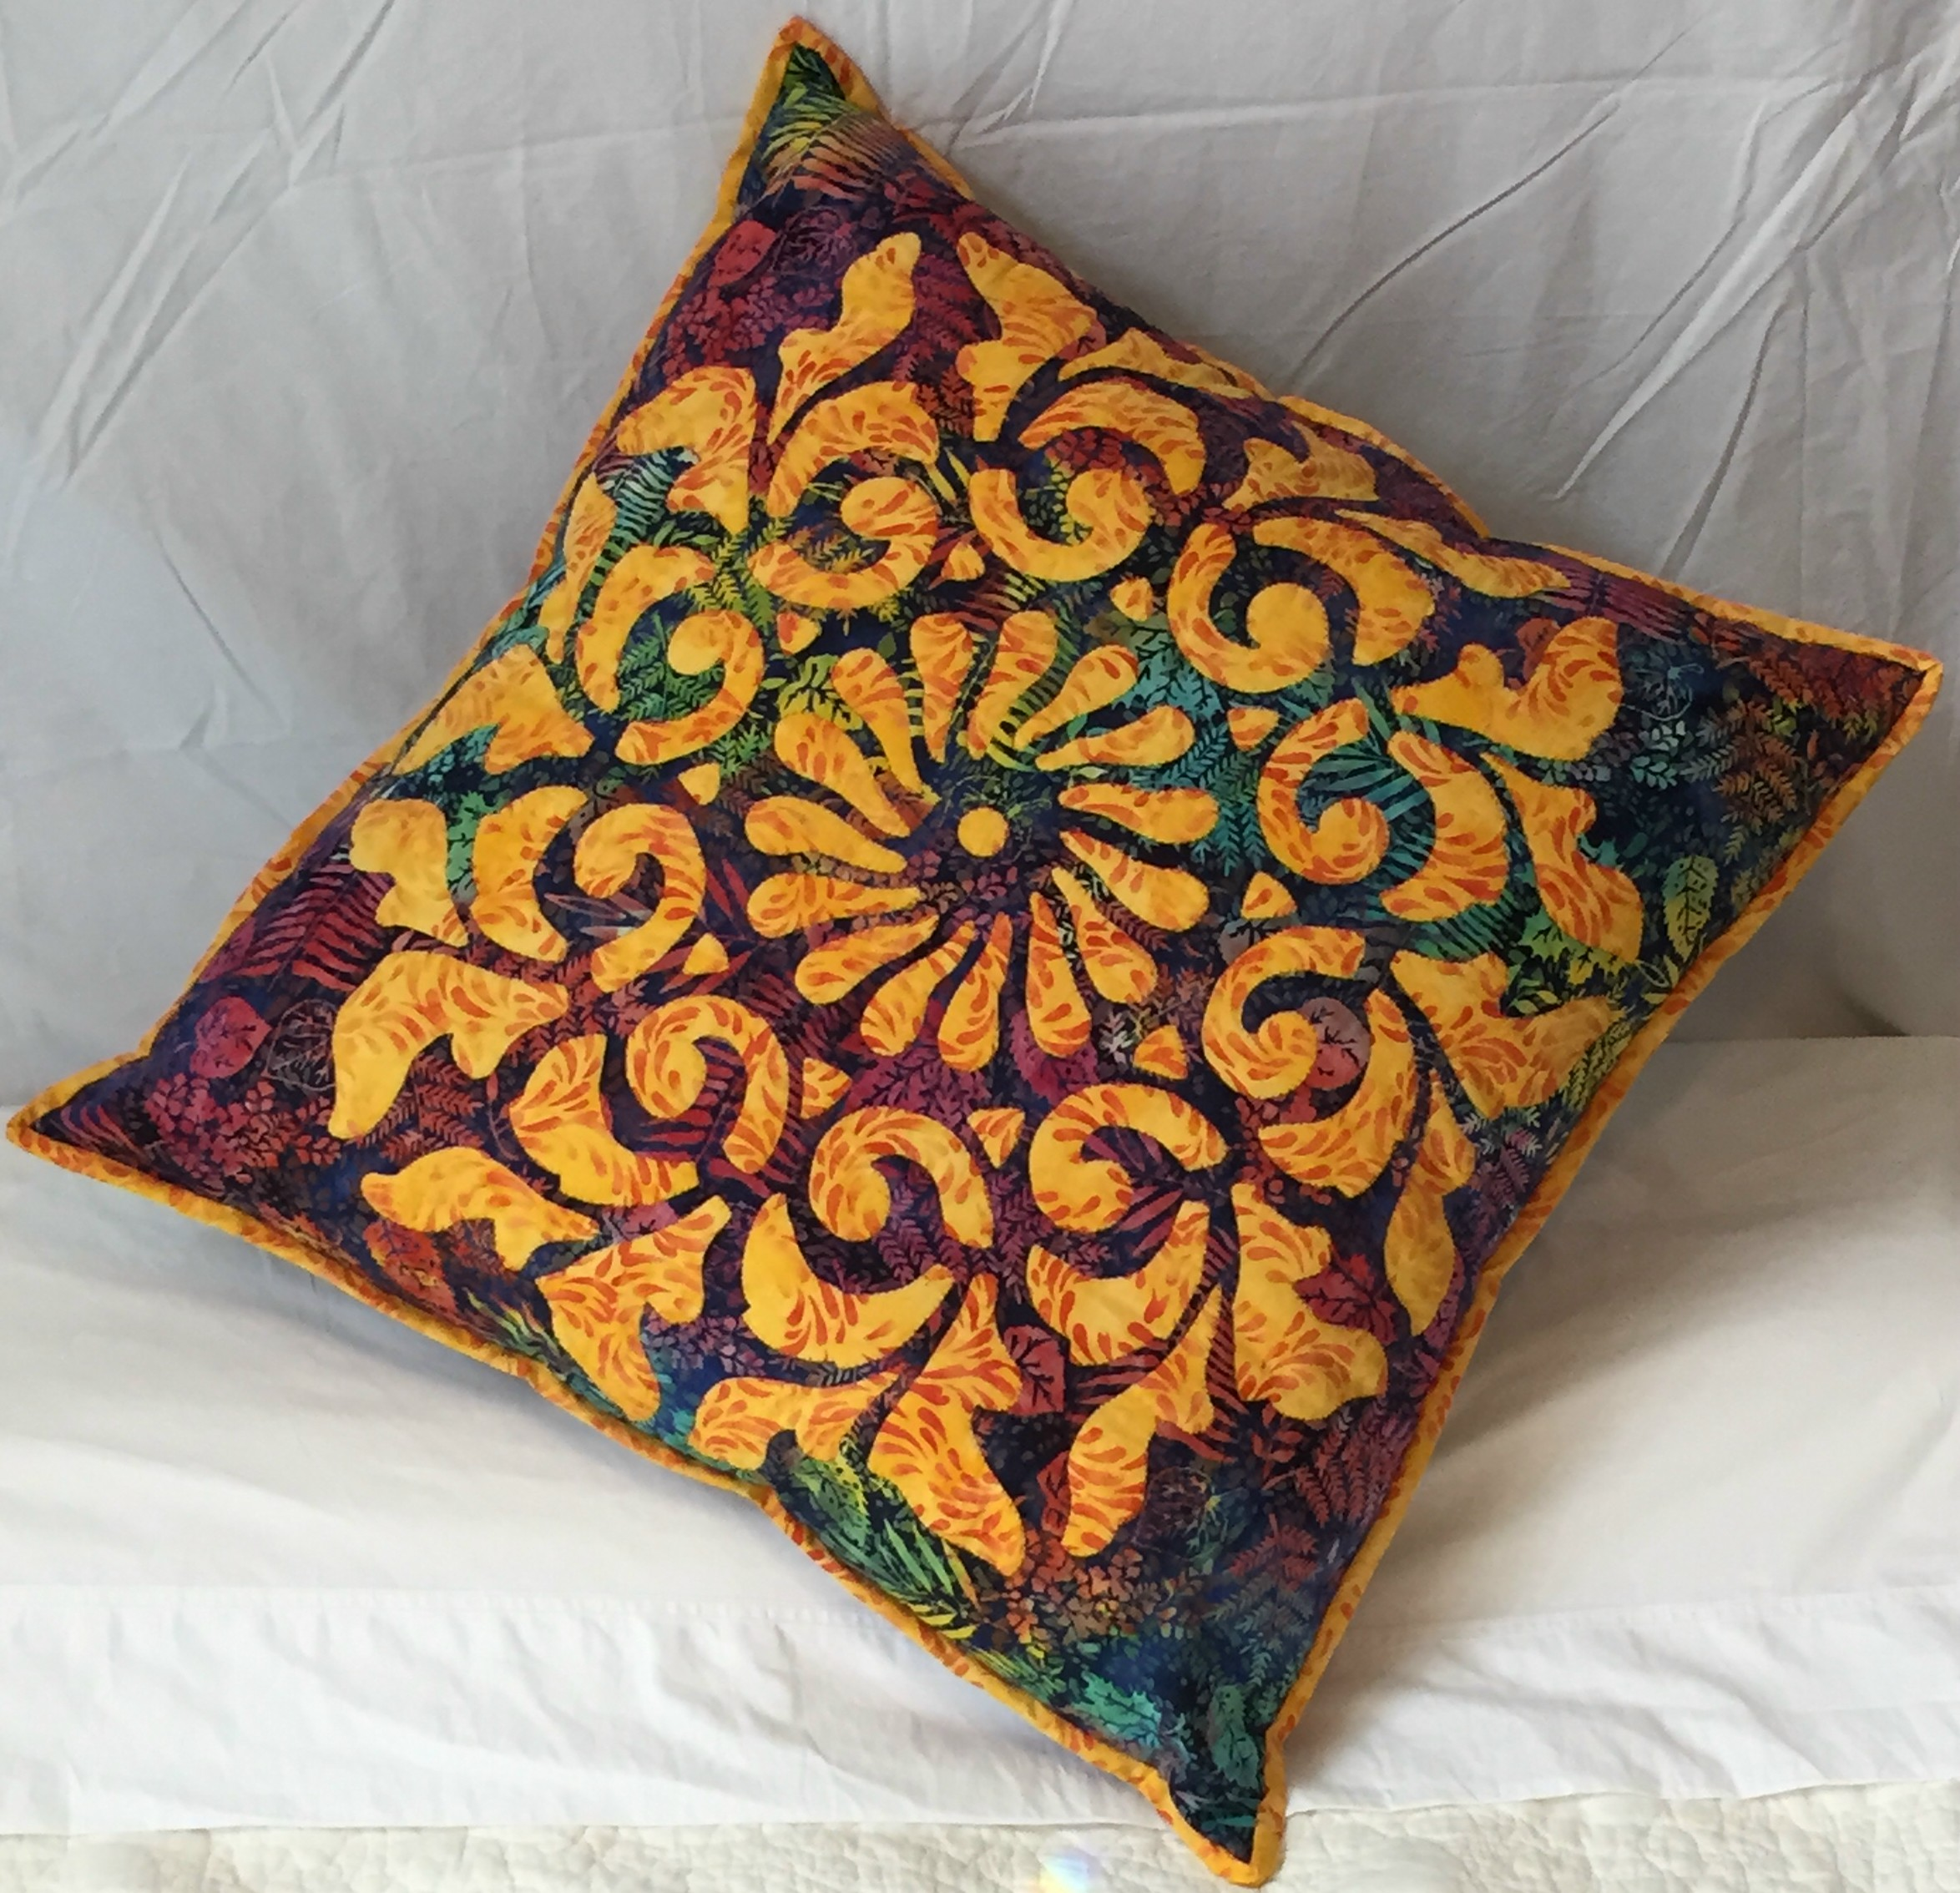 "Radiance, Medallion V    (26"" x 26""). hand and machine. New directions include how to make as fun, cuddly pillow!"